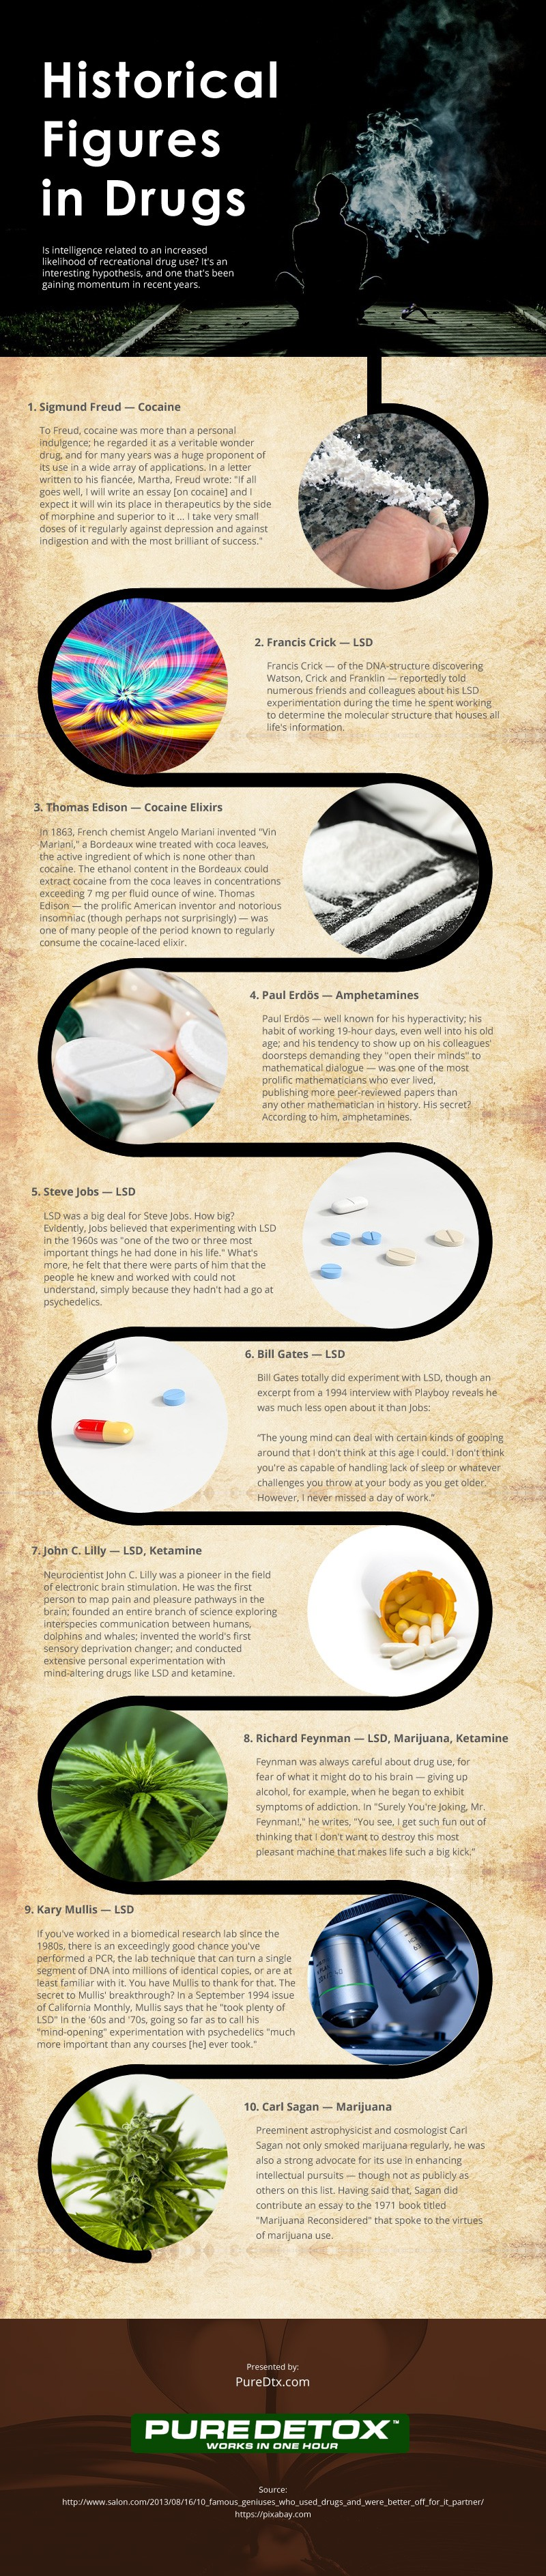 Historical Figures in Drugs